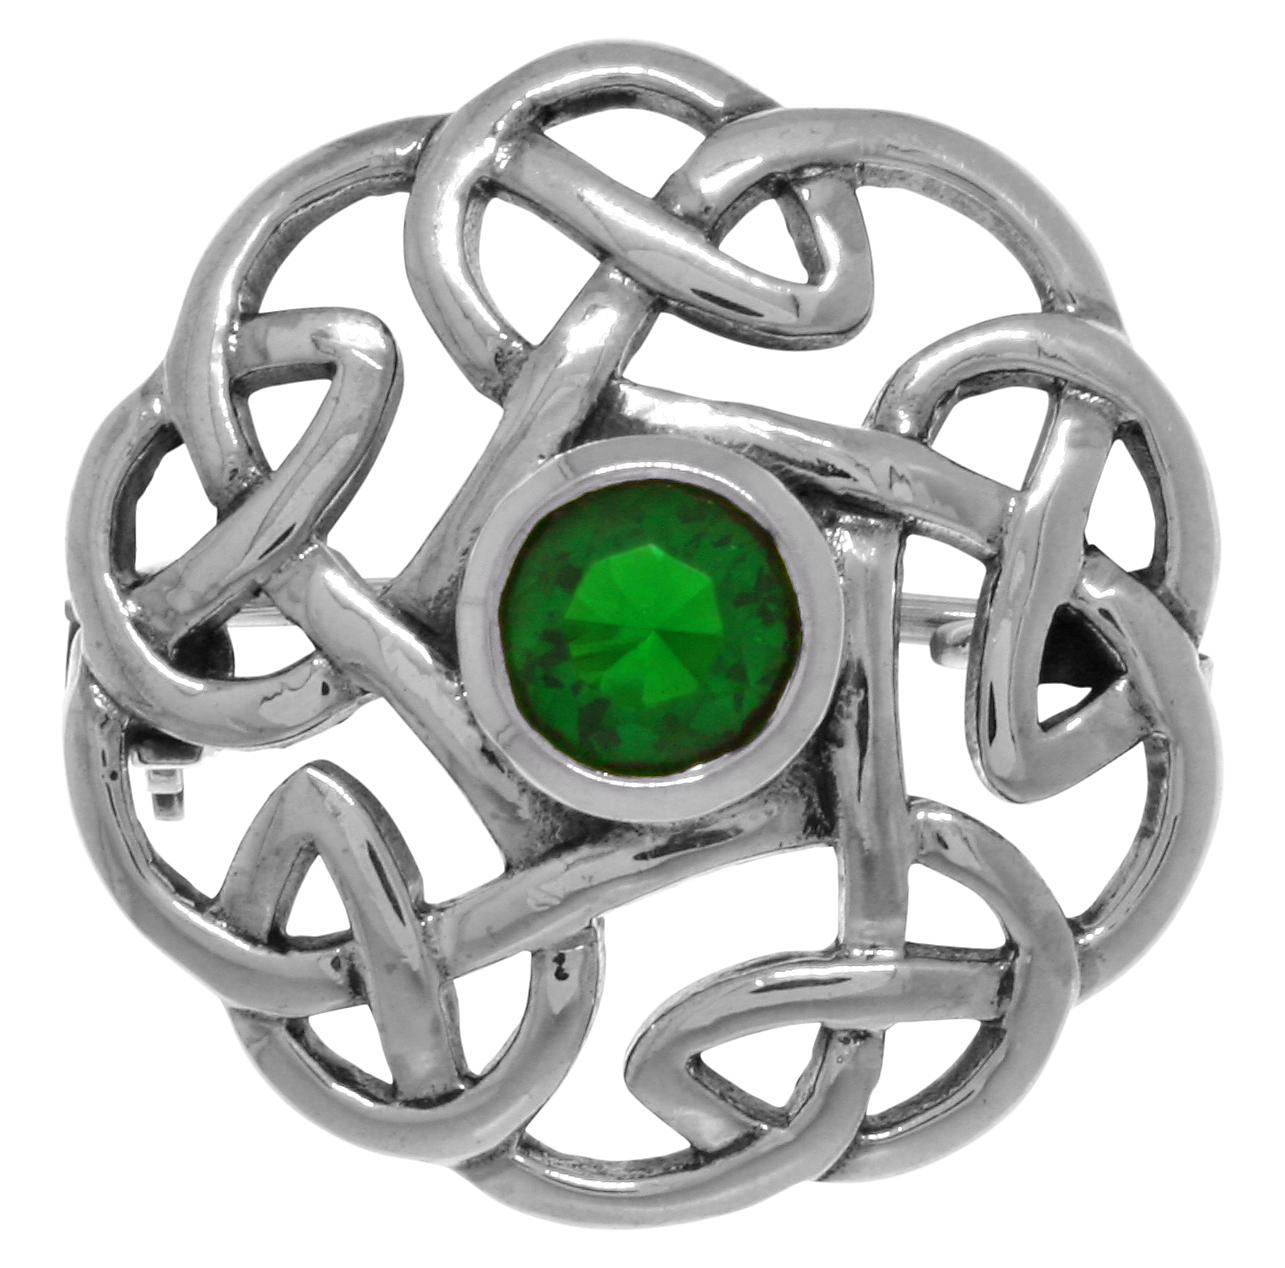 Jewelry Trends Sterling Silver Round Celtic Thistle Brooch Pin with Green Glass by Jewelry Trends